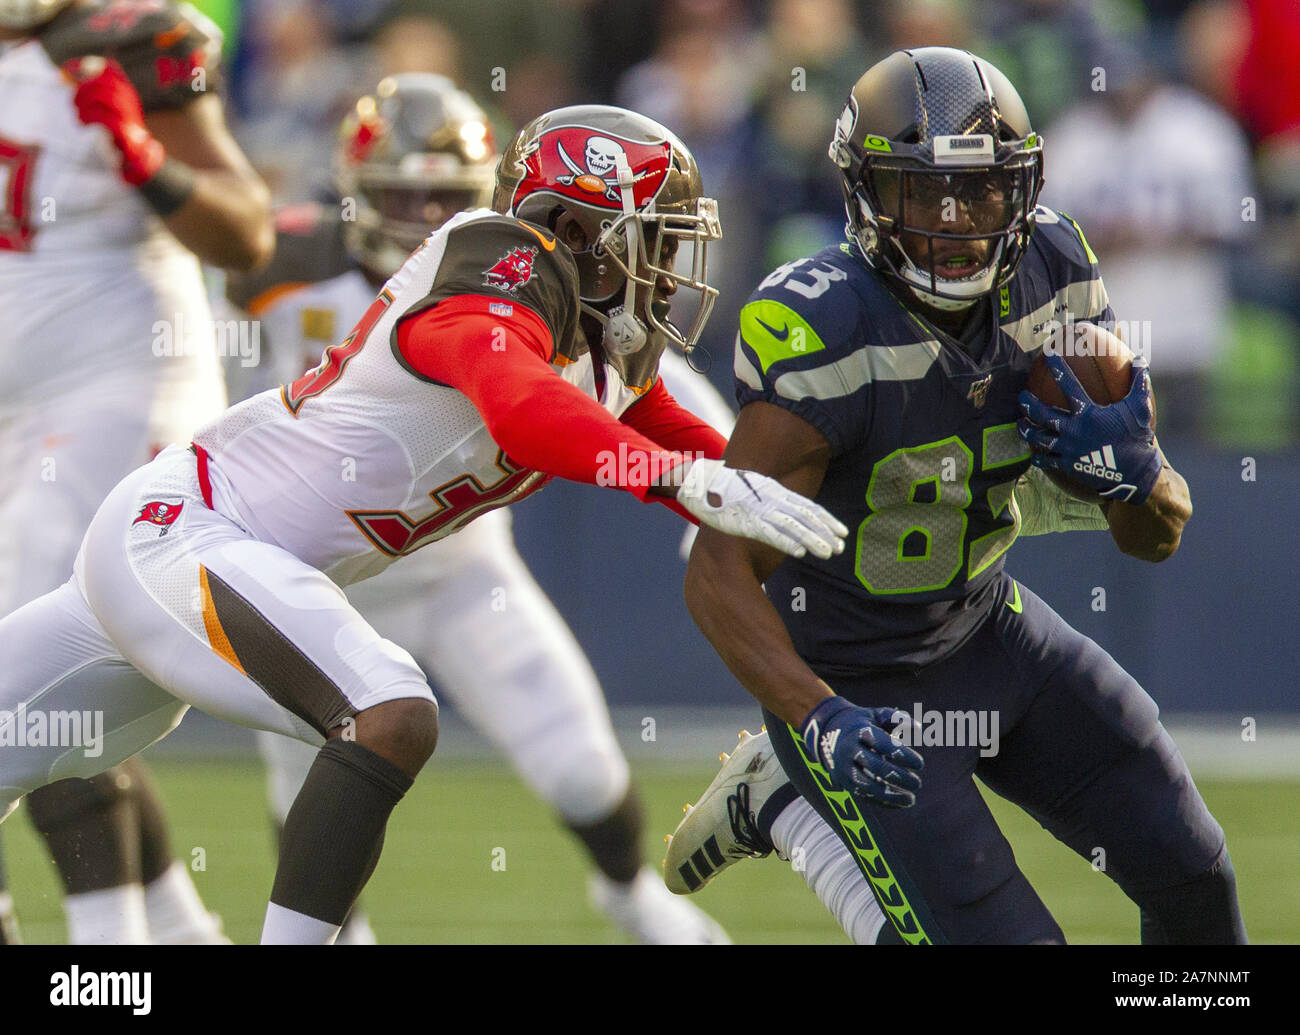 Seattle, United States. 03rd Nov, 2019. Seattle Seahawks wide receiver David Moore (83) picks up first down yardage against Tampa Bay Buccaneers cornerback Carlton Davis (33) second quarter at CenturyLink Field on Sunday, November 3, 2019 in Seattle, Washington. The Buccaneers lead the Seahawks 21-13 at halftime. Jim Bryant Photo/UPI Credit: UPI/Alamy Live News Stock Photo